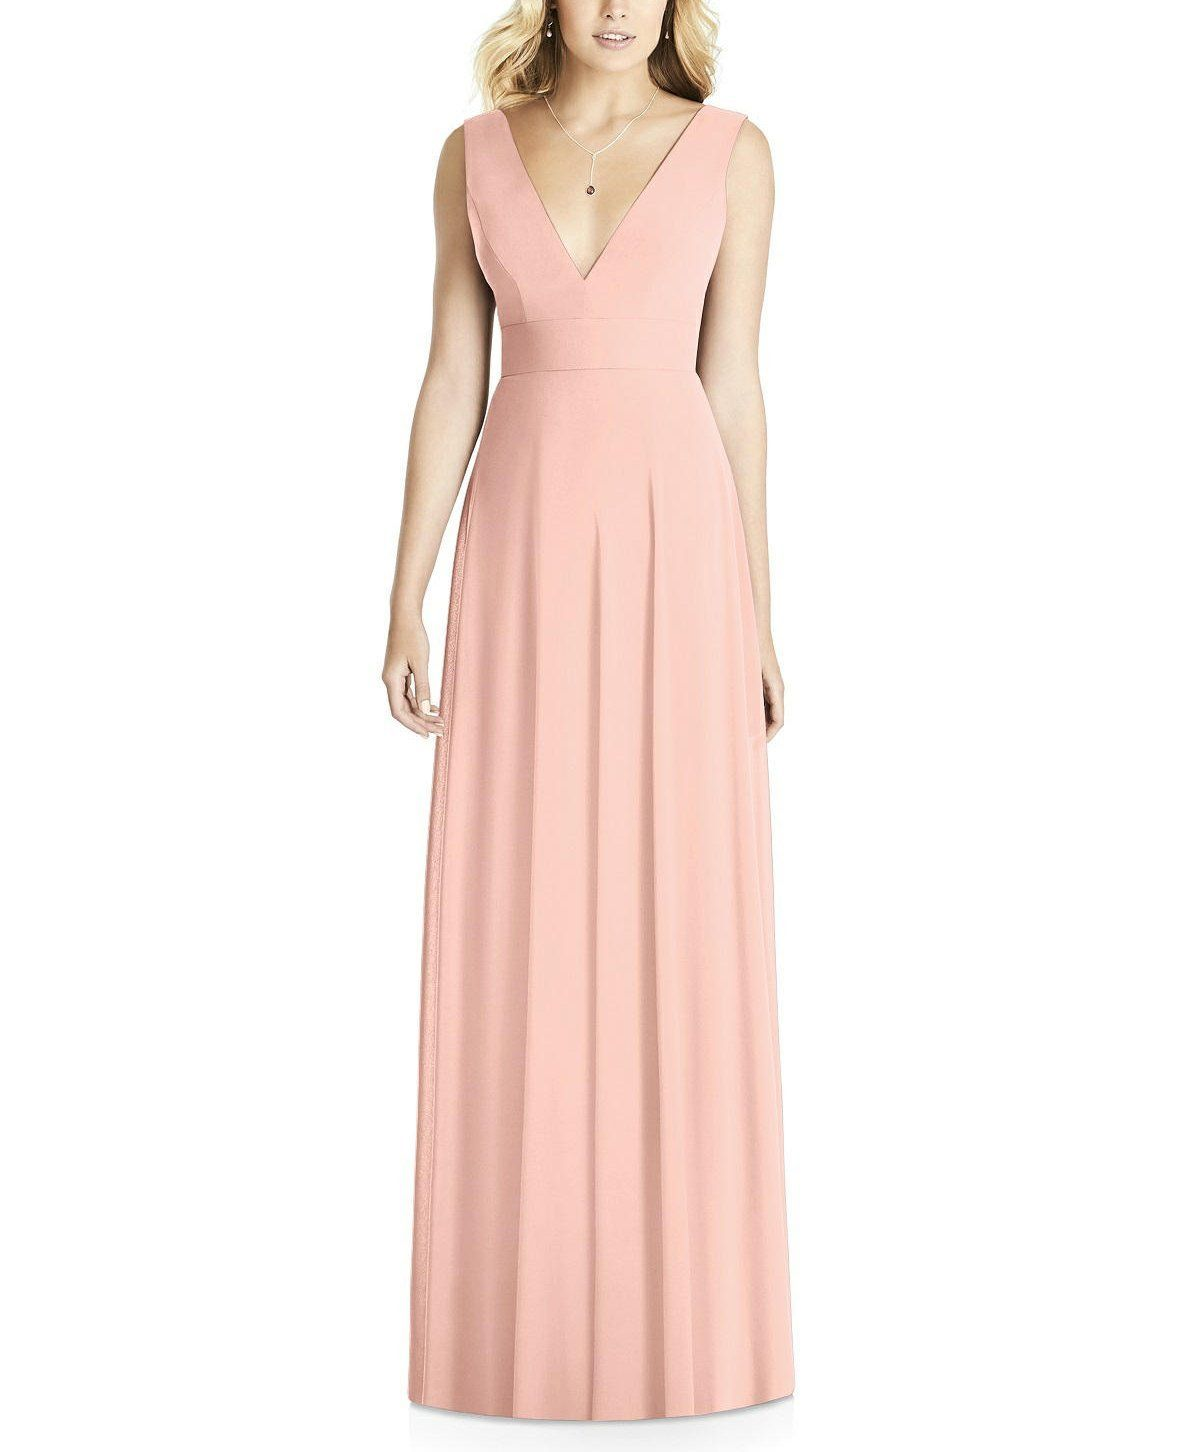 4571c518dee Description - Social Bridesmaids Style 8185 - Full length bridesmaid dress  - Vneck and matching V back - Clean lines and flat front skirt - Matte  Chiffon